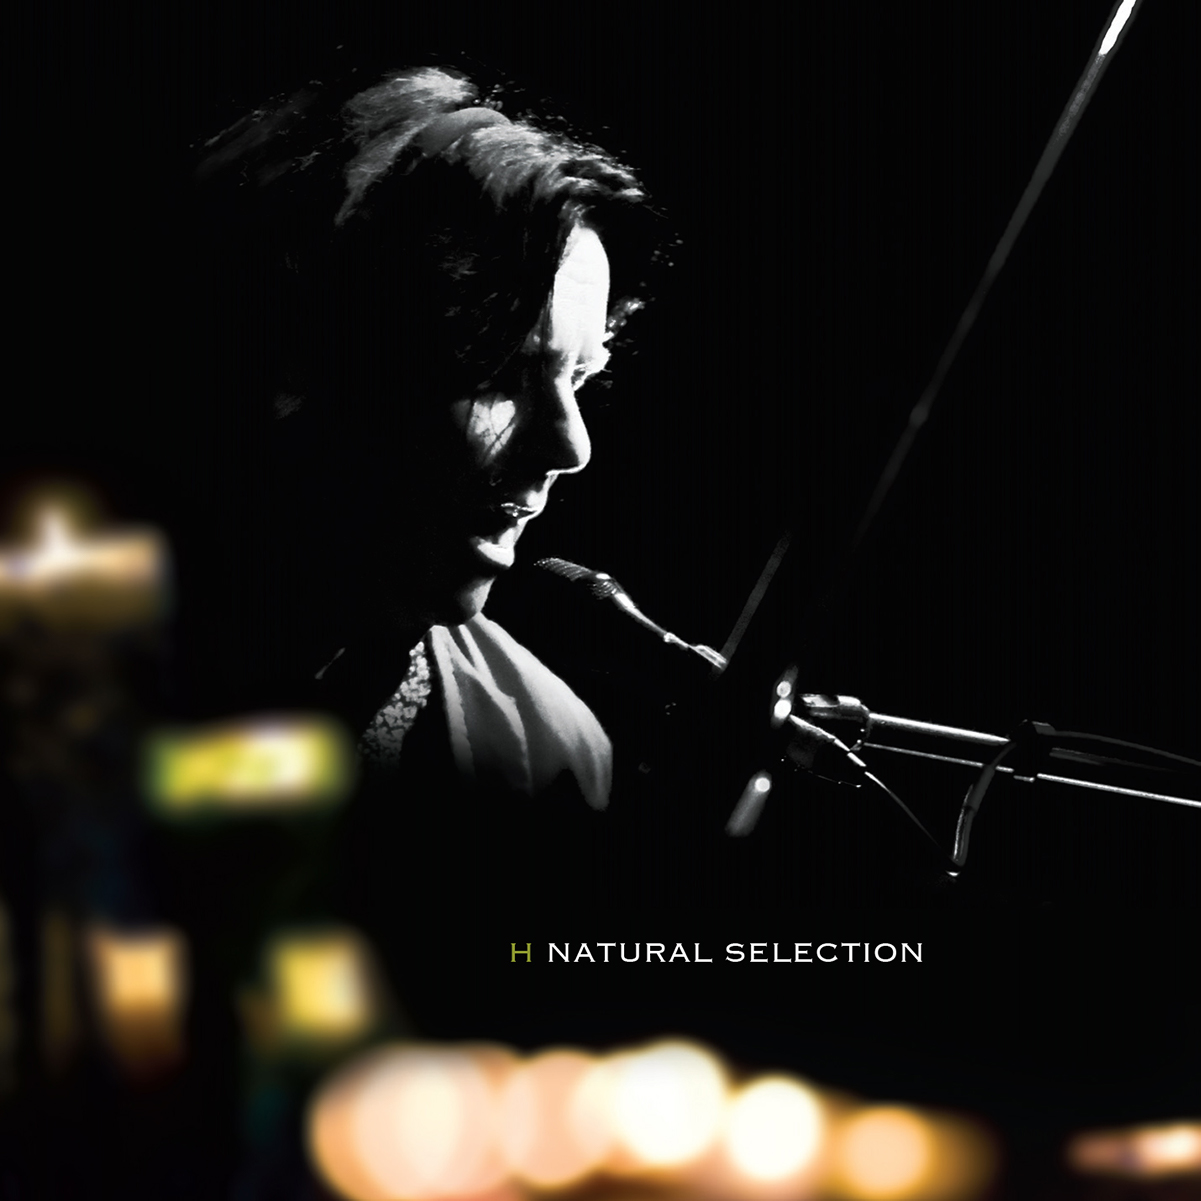 NATURAL SELECTION 320 KBPS ALBUM DOWNLOAD